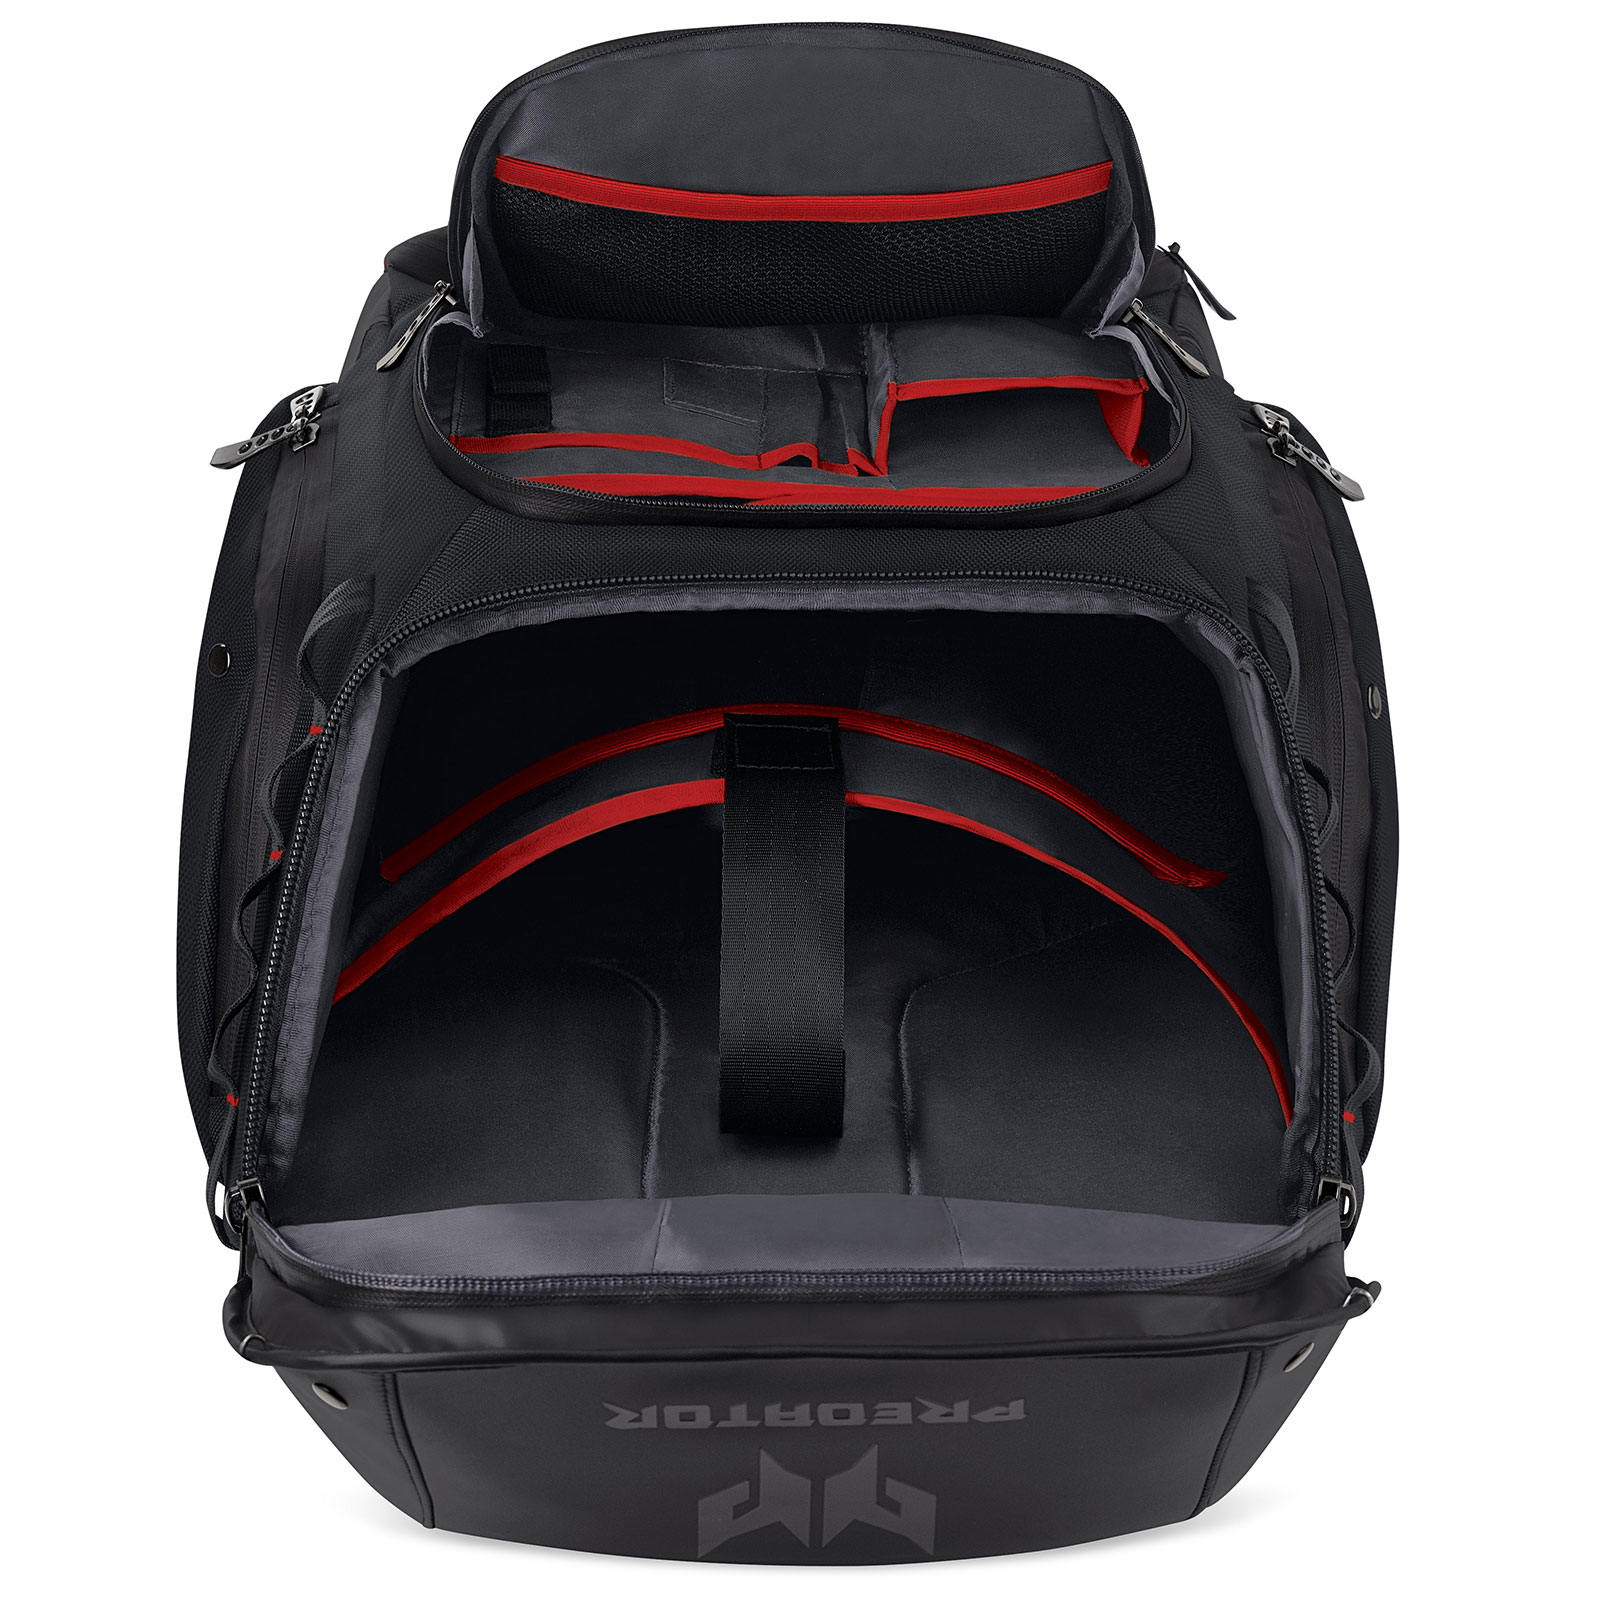 Sac Pour Pc Acer Predator Gaming Backpack - Sac, Sacoche, Housse Acer